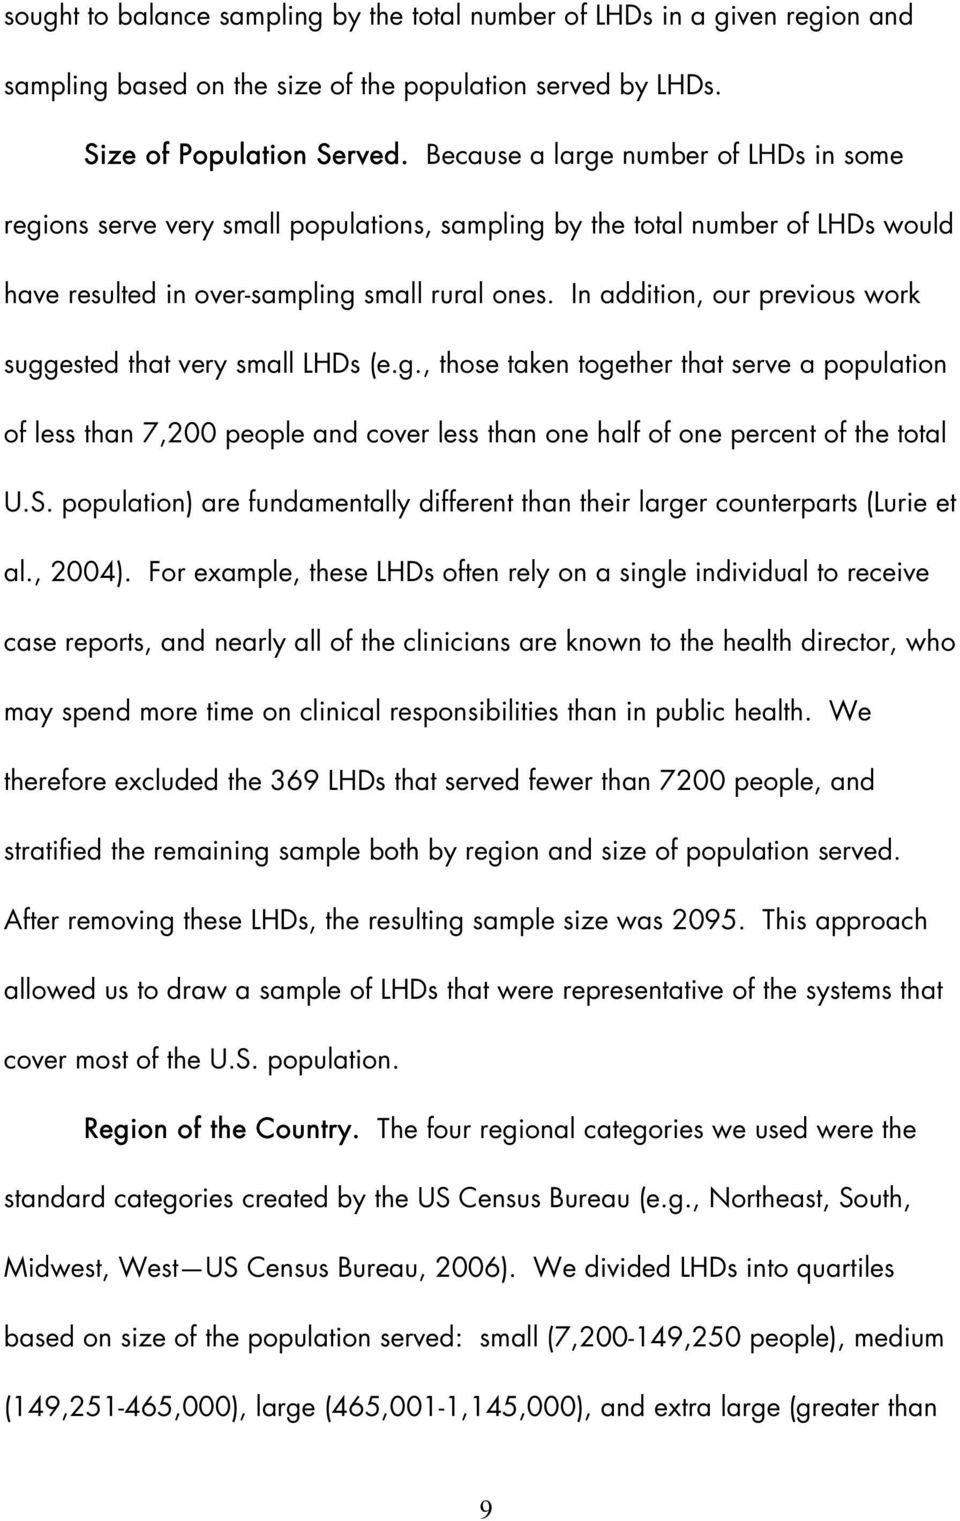 In addition, our previous work suggested that very small LHDs (e.g., those taken together that serve a population of less than 7,200 people and cover less than one half of one percent of the total U.